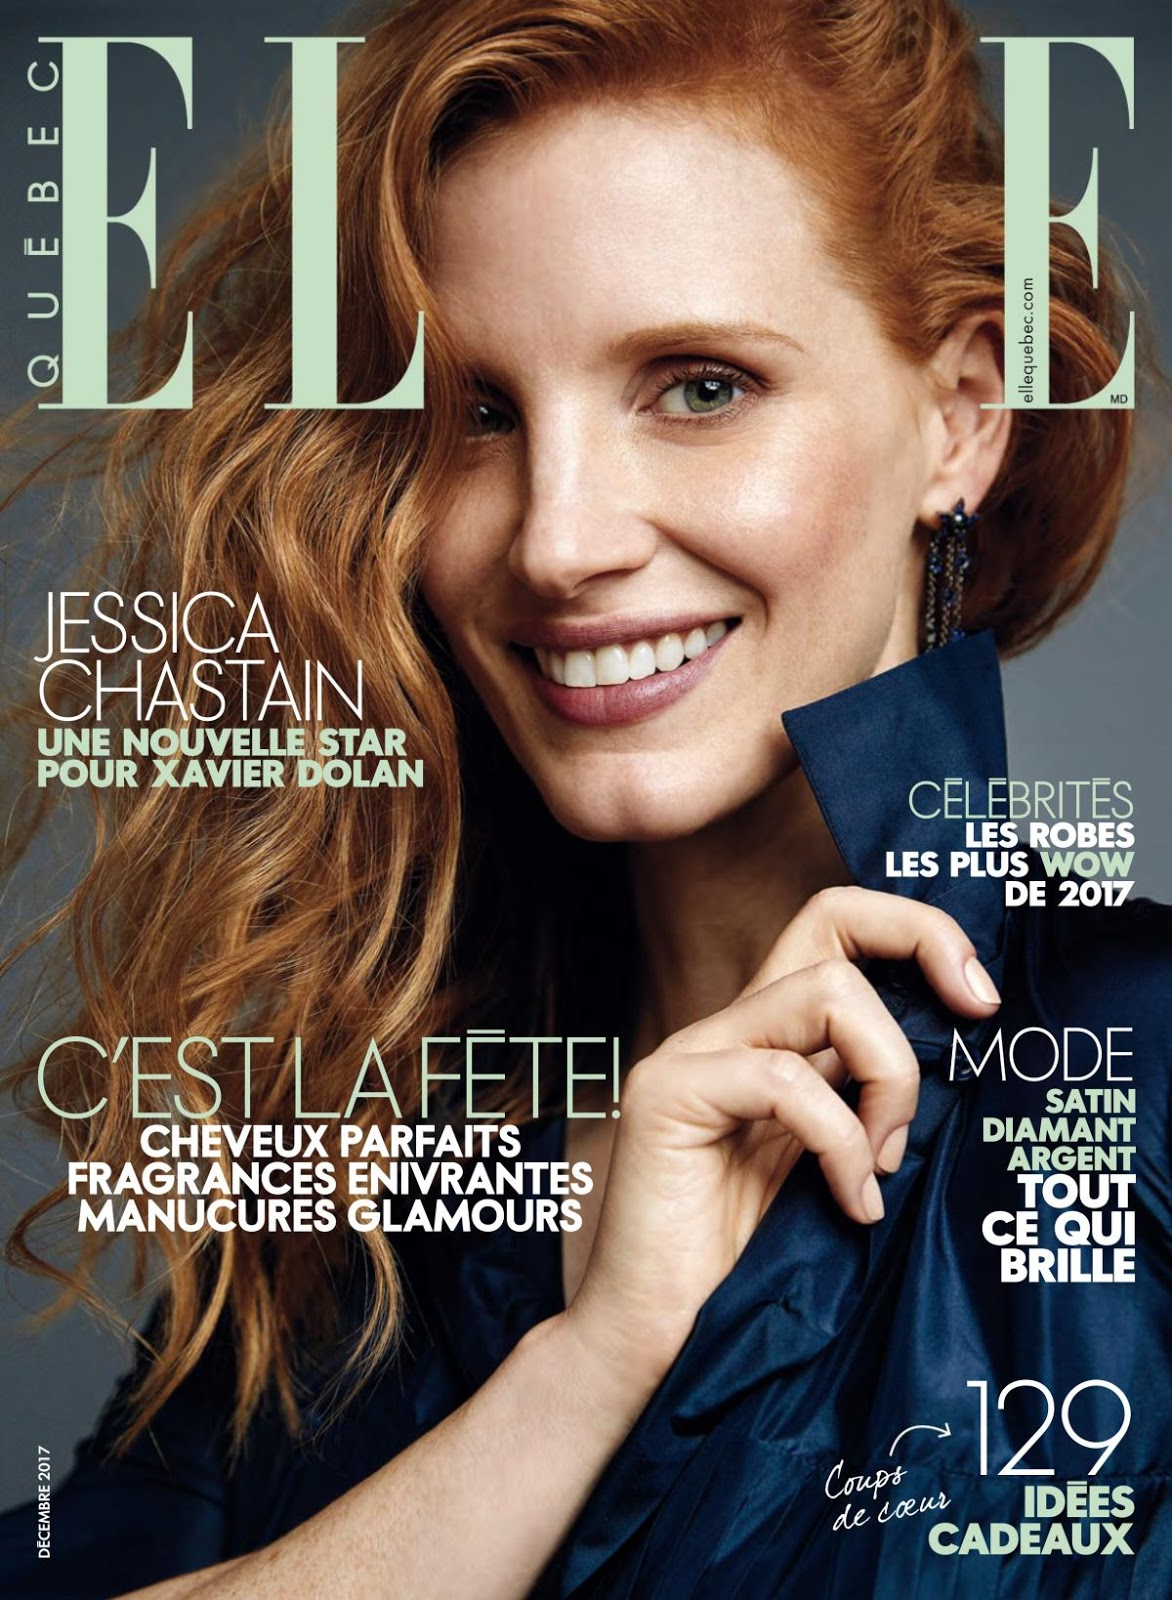 Photoshoot of Jessica Chastain in Elle Magazine, Quebec December 2017